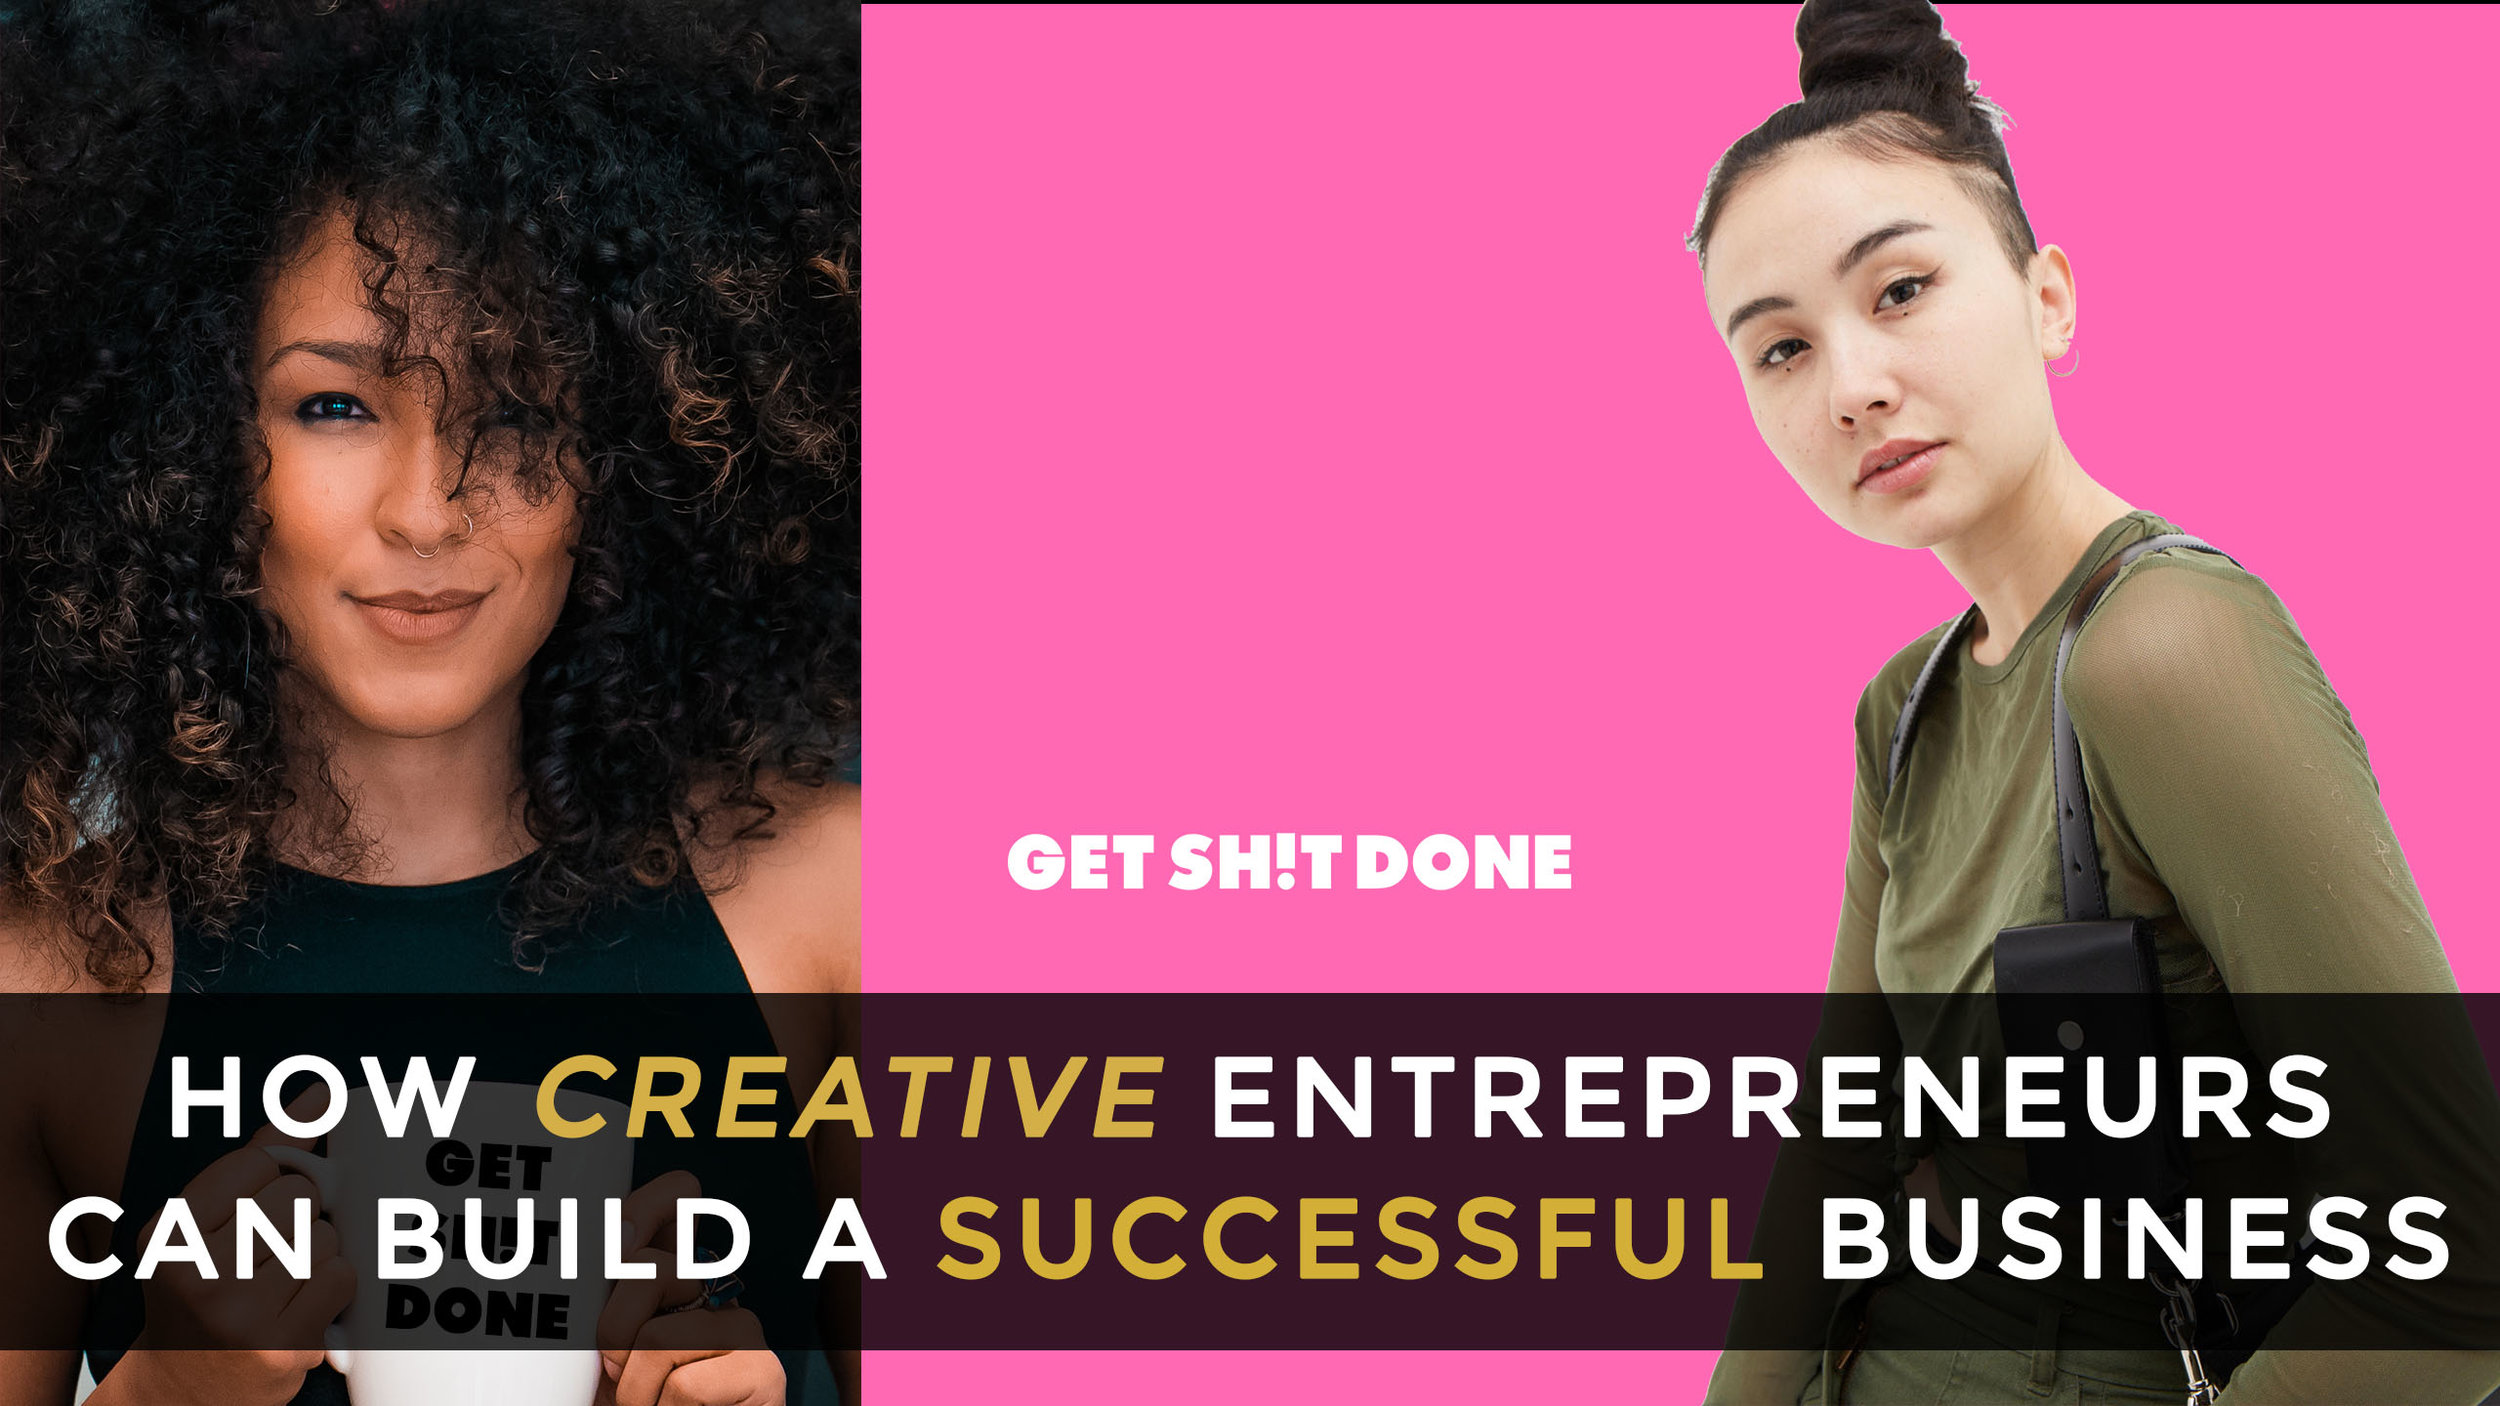 One of the primary struggles I hear from artists and creative entrepreneurs is that it's extremely difficult trying to run and grow a successful business without sacrificing their creativity. They feel like they have to choose what gets sacrificed - either the business or their creativity. However, you don't have to sacrifice your business or creativity as a creative entrepreneur, if you play your cards right. Learn how creative entrepreneurs can run successful companies that don't kill their creative vibe from Daryl Oh, the founder of Holyrad Studios (her name spelled backward ;)   WATCH NOW  ( Will be available in podcast format soon!)